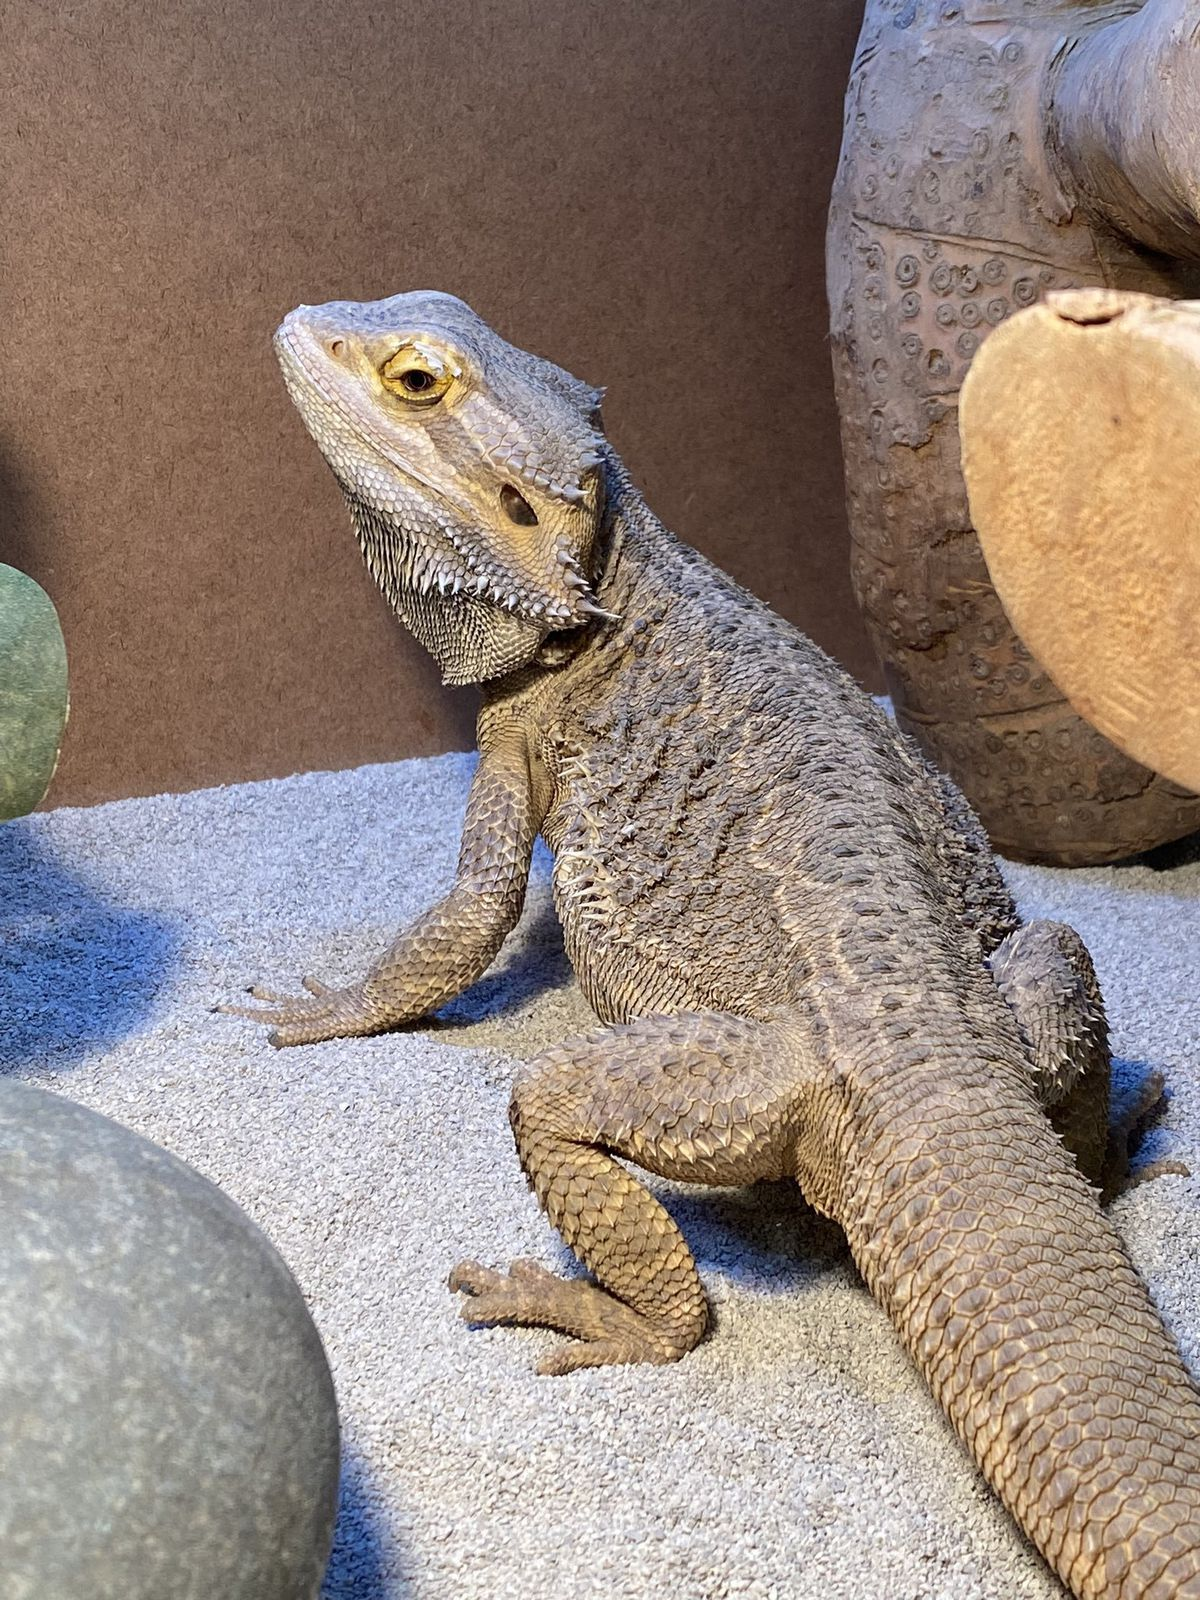 The new lizard, Bertie, who is larger than Gary/Monty and lives in a vivarium